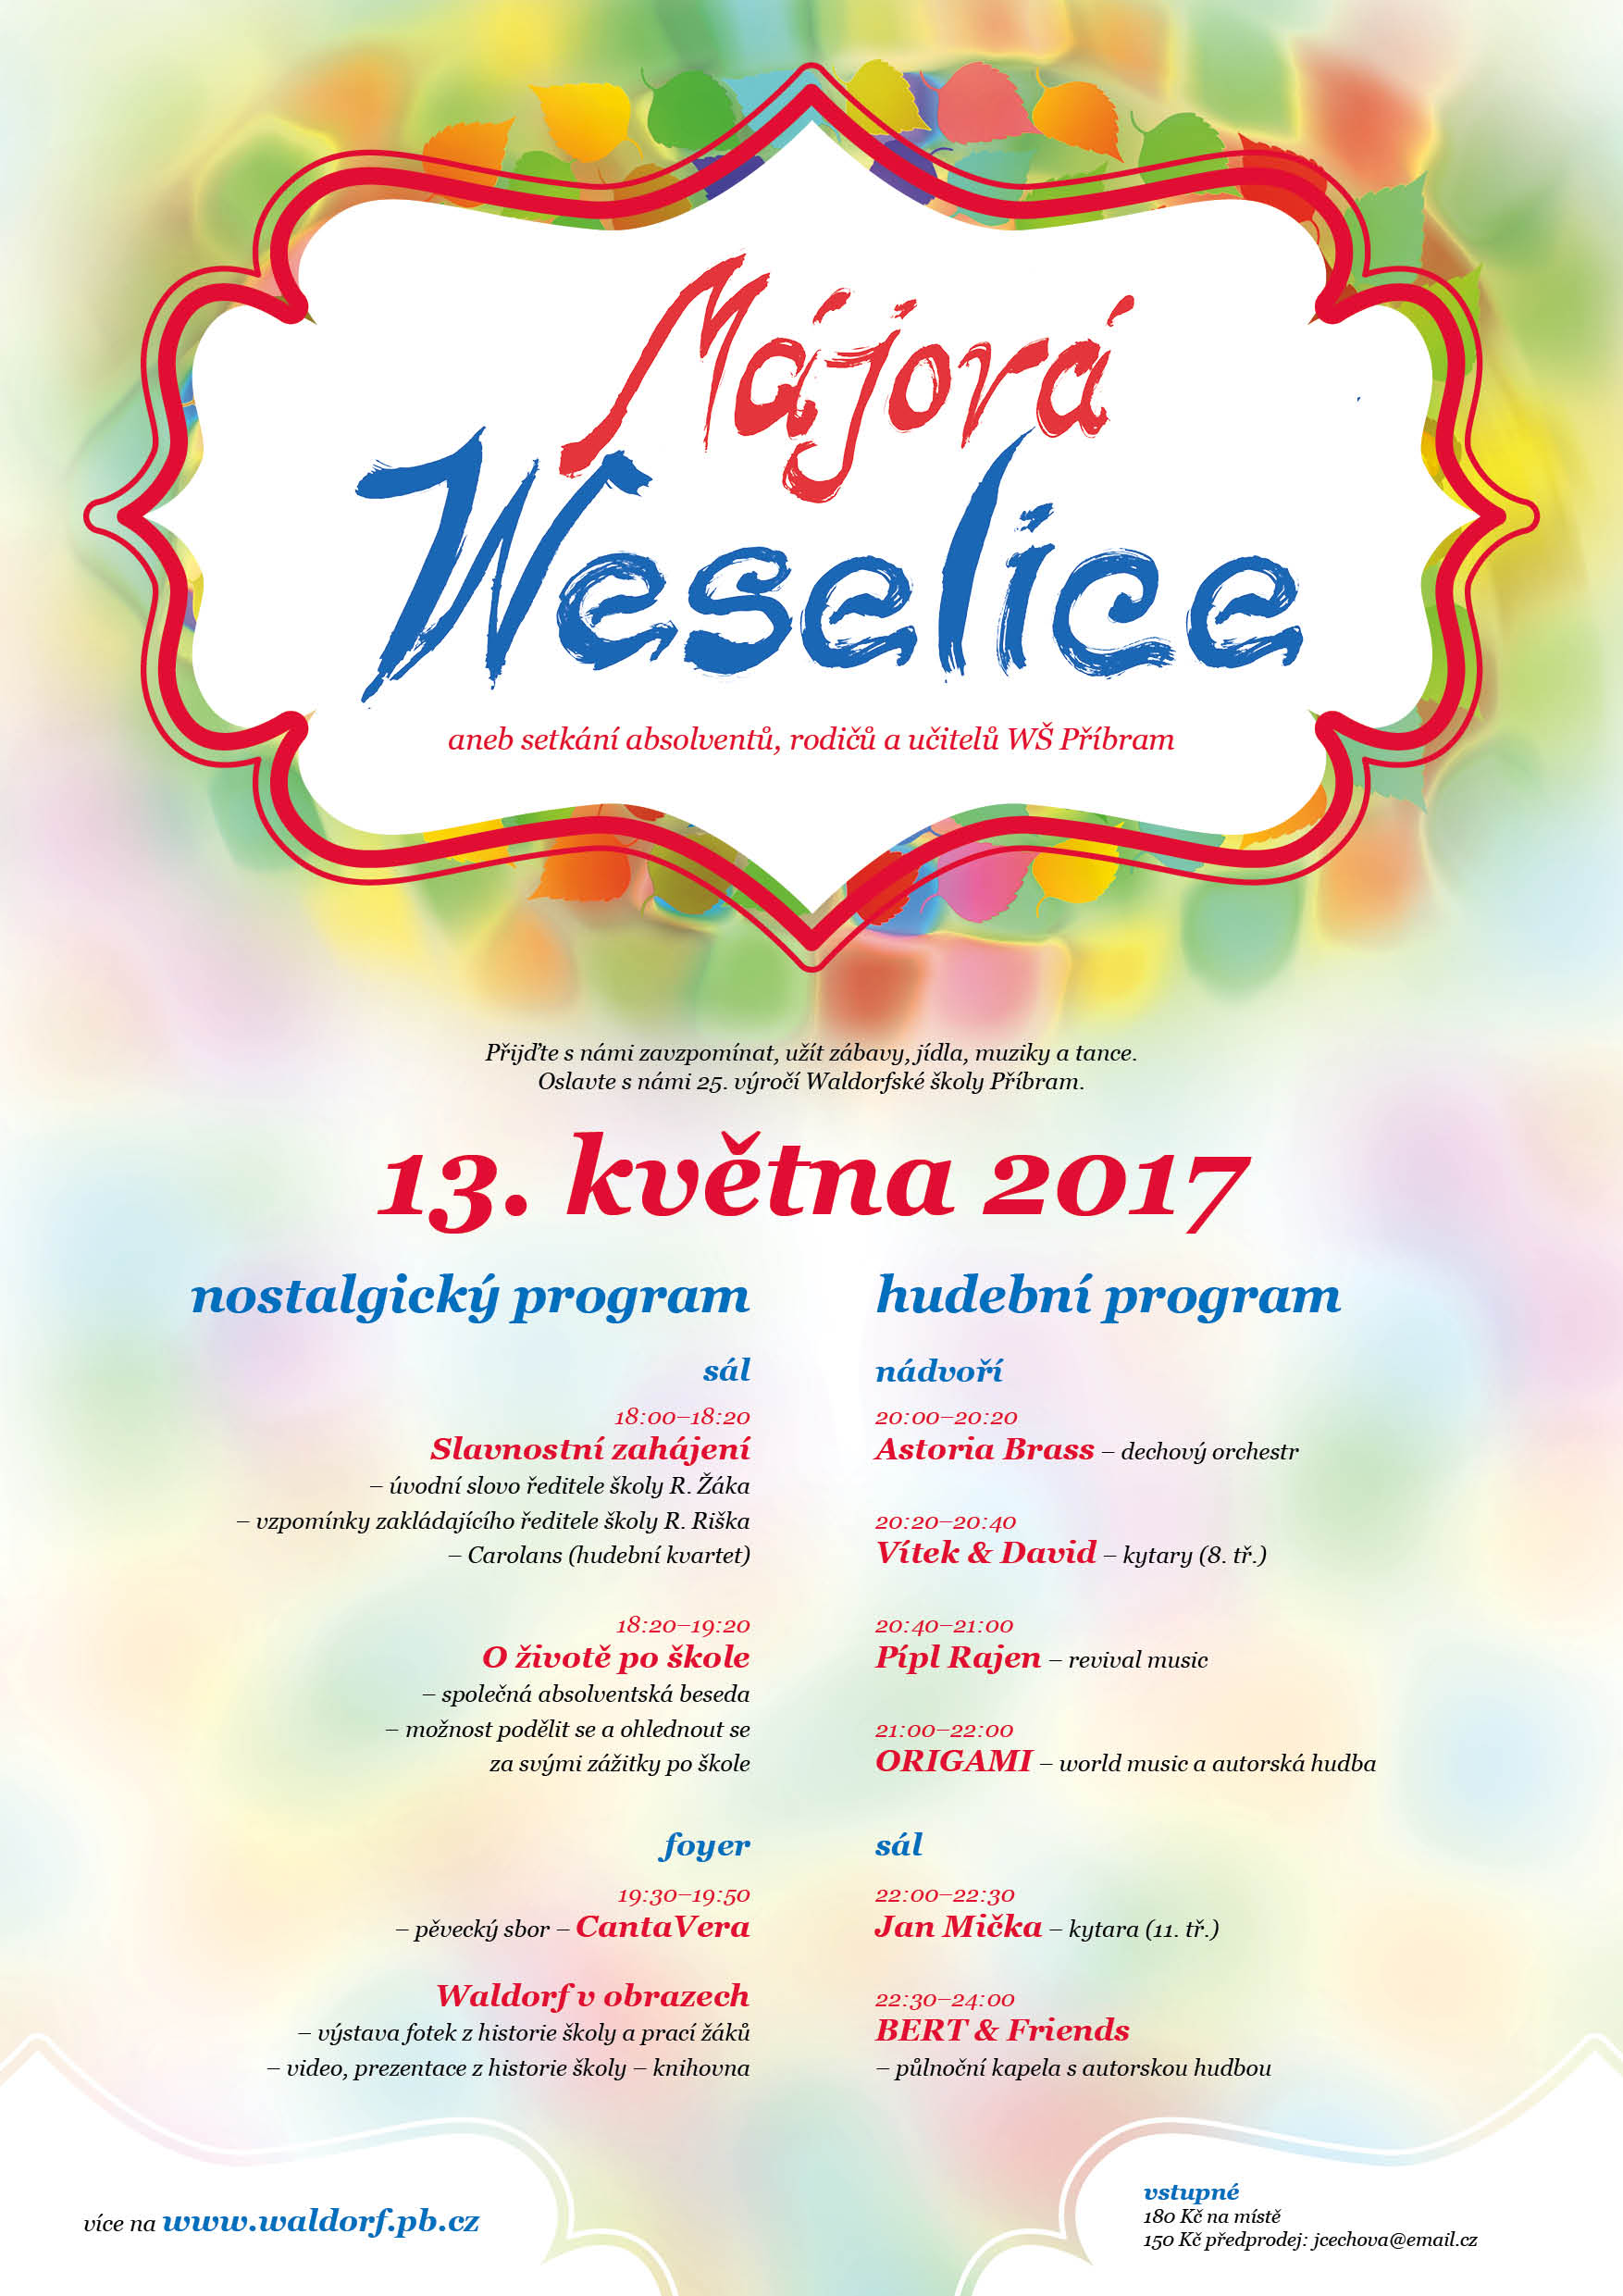 Majova weselice program